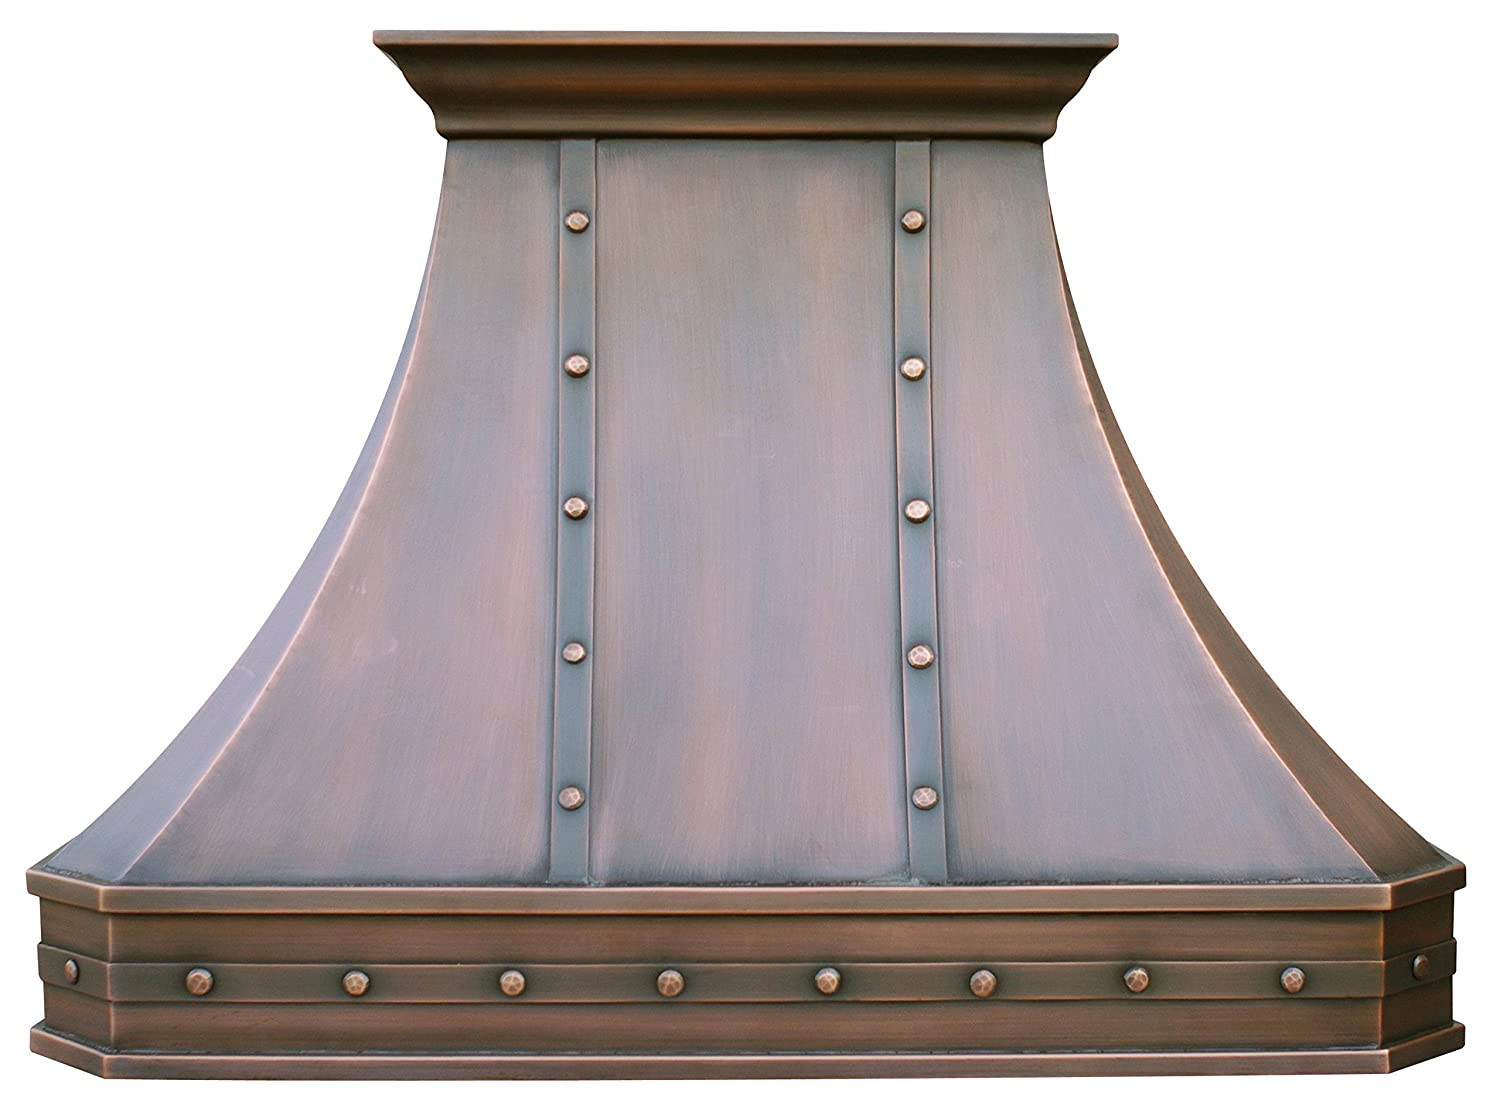 """Sinda Copper Kitchen Range Hood with High Airflow Centrifugal Blower, Includes SUS 304 Liner and Baffle Filter, High CFM Vent Motor, Wall/Island/Ceiling Mount, Width 30/36/42/48 in (W30""""xH27""""Wall)"""